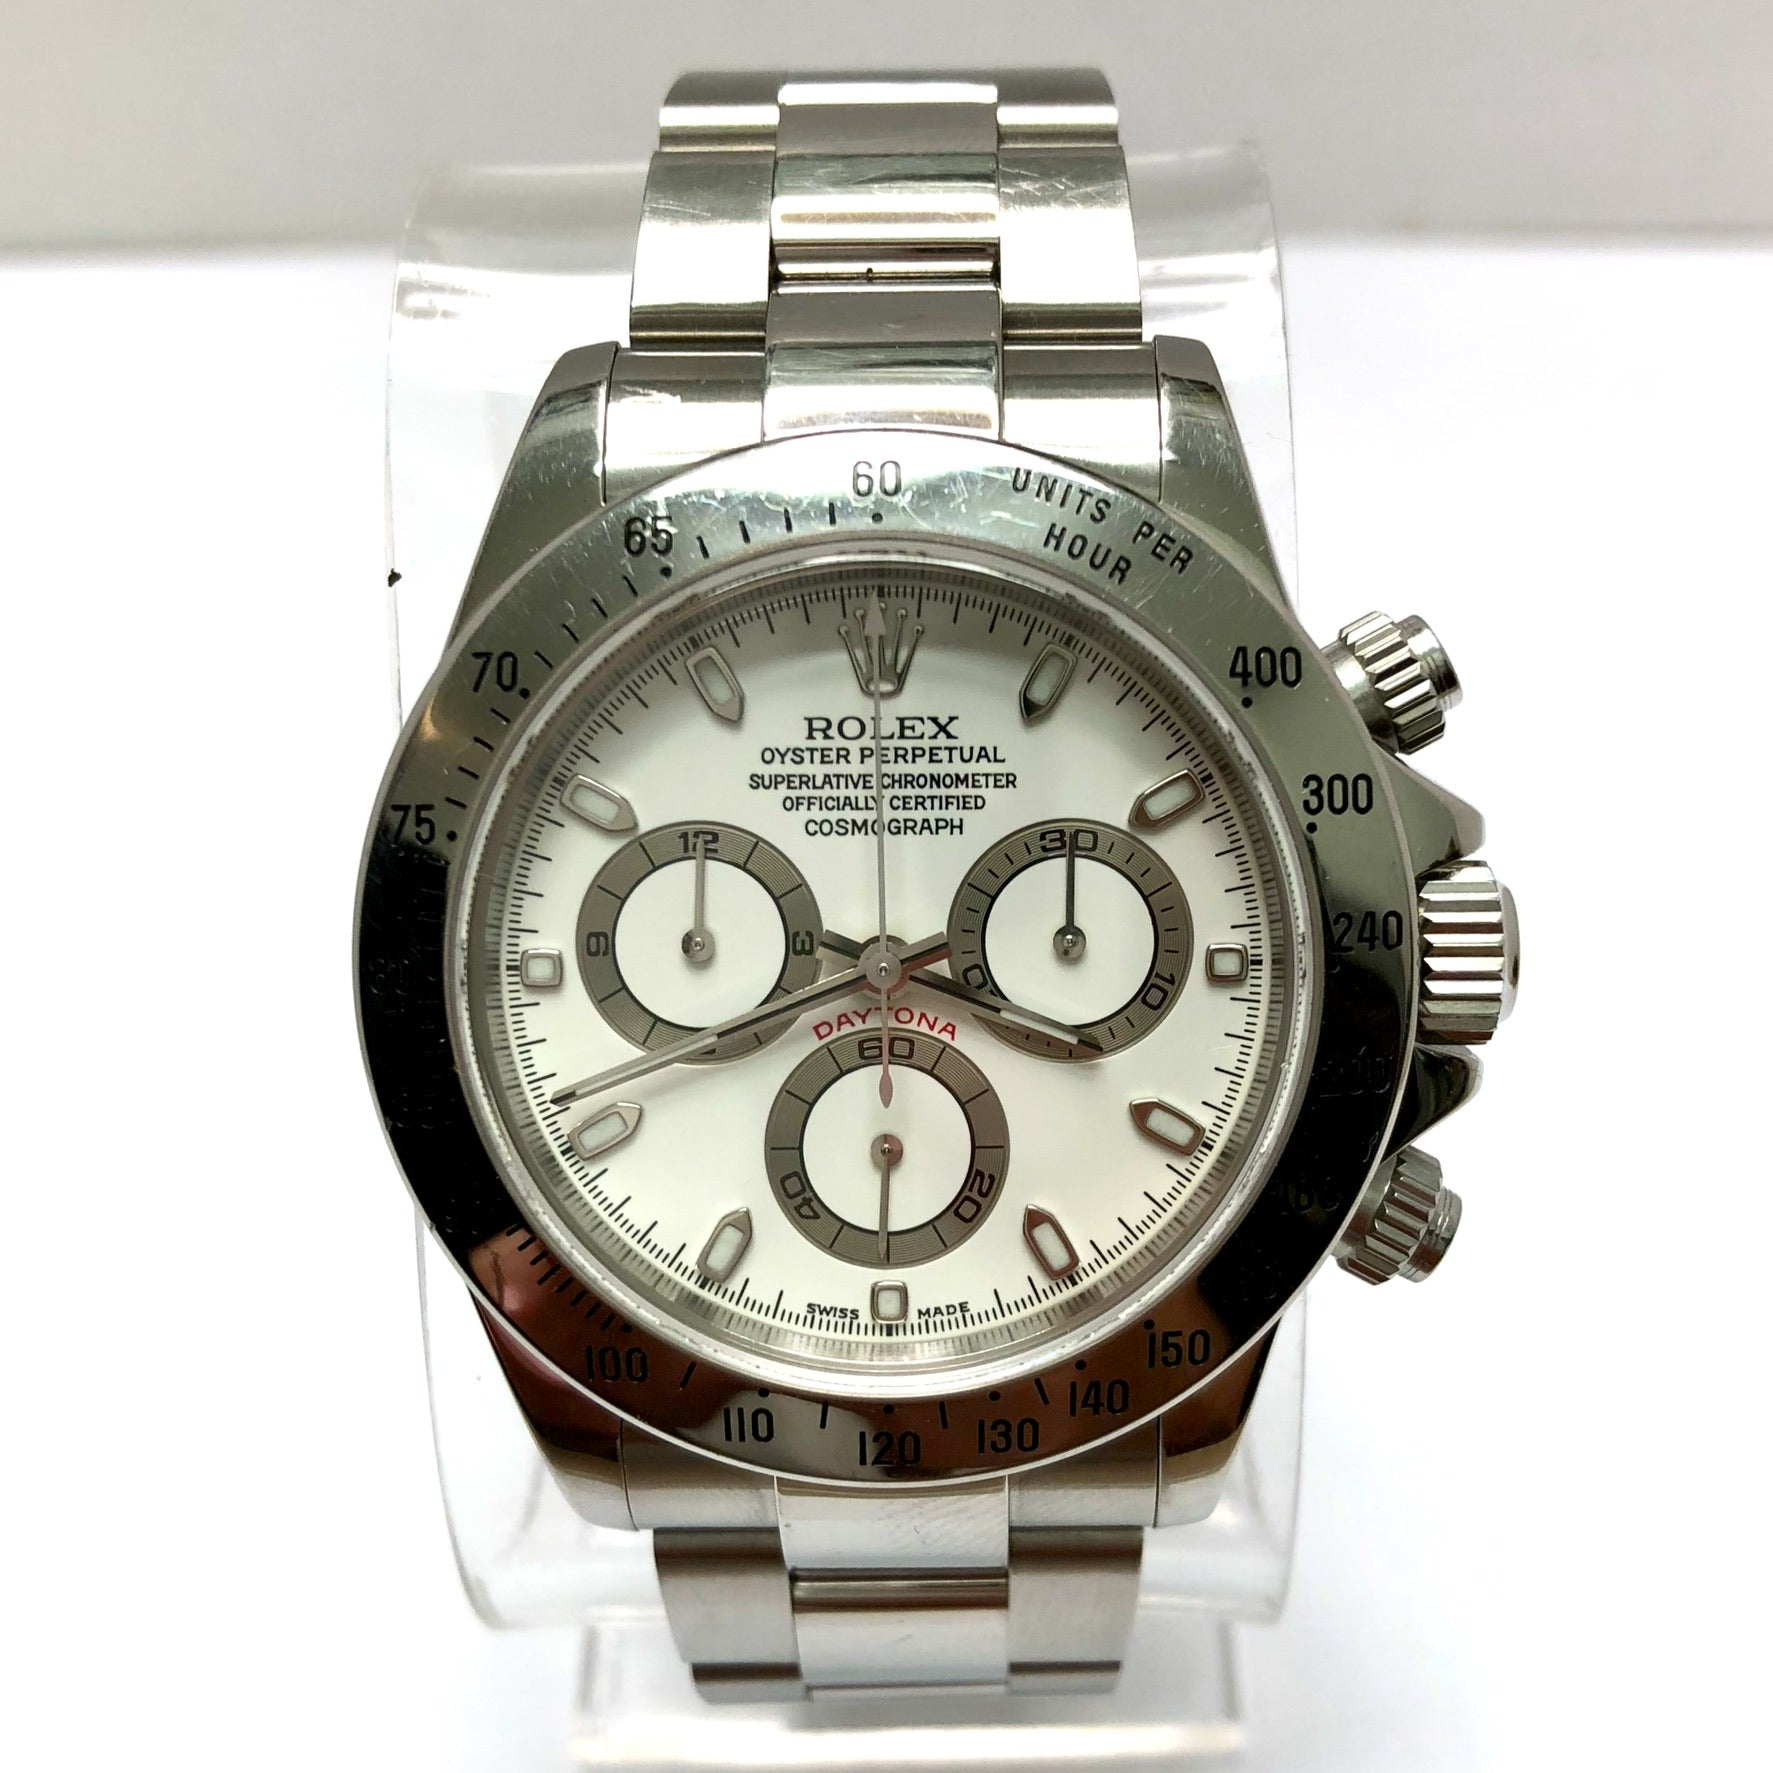 ROLEX OYSTER PERPETUAL COSMOGRAPH DAYTONA Stainless Steel Men\u2019s/Unisex Watch